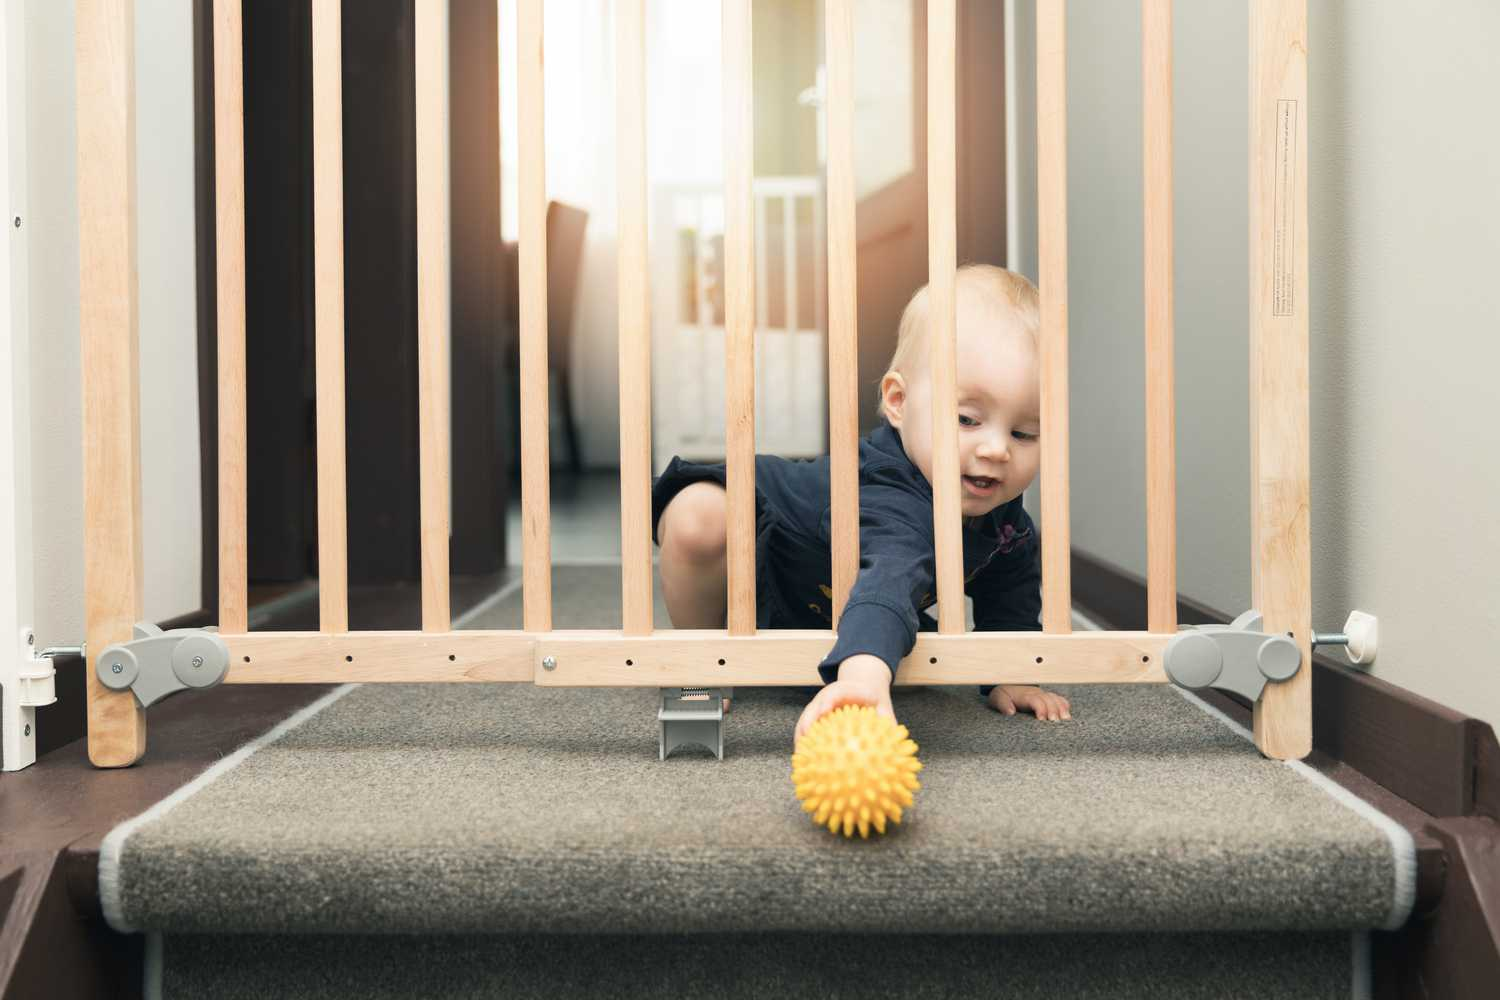 Household Safety: Preventing Injuries From Falling, Climbing, And Grabbing